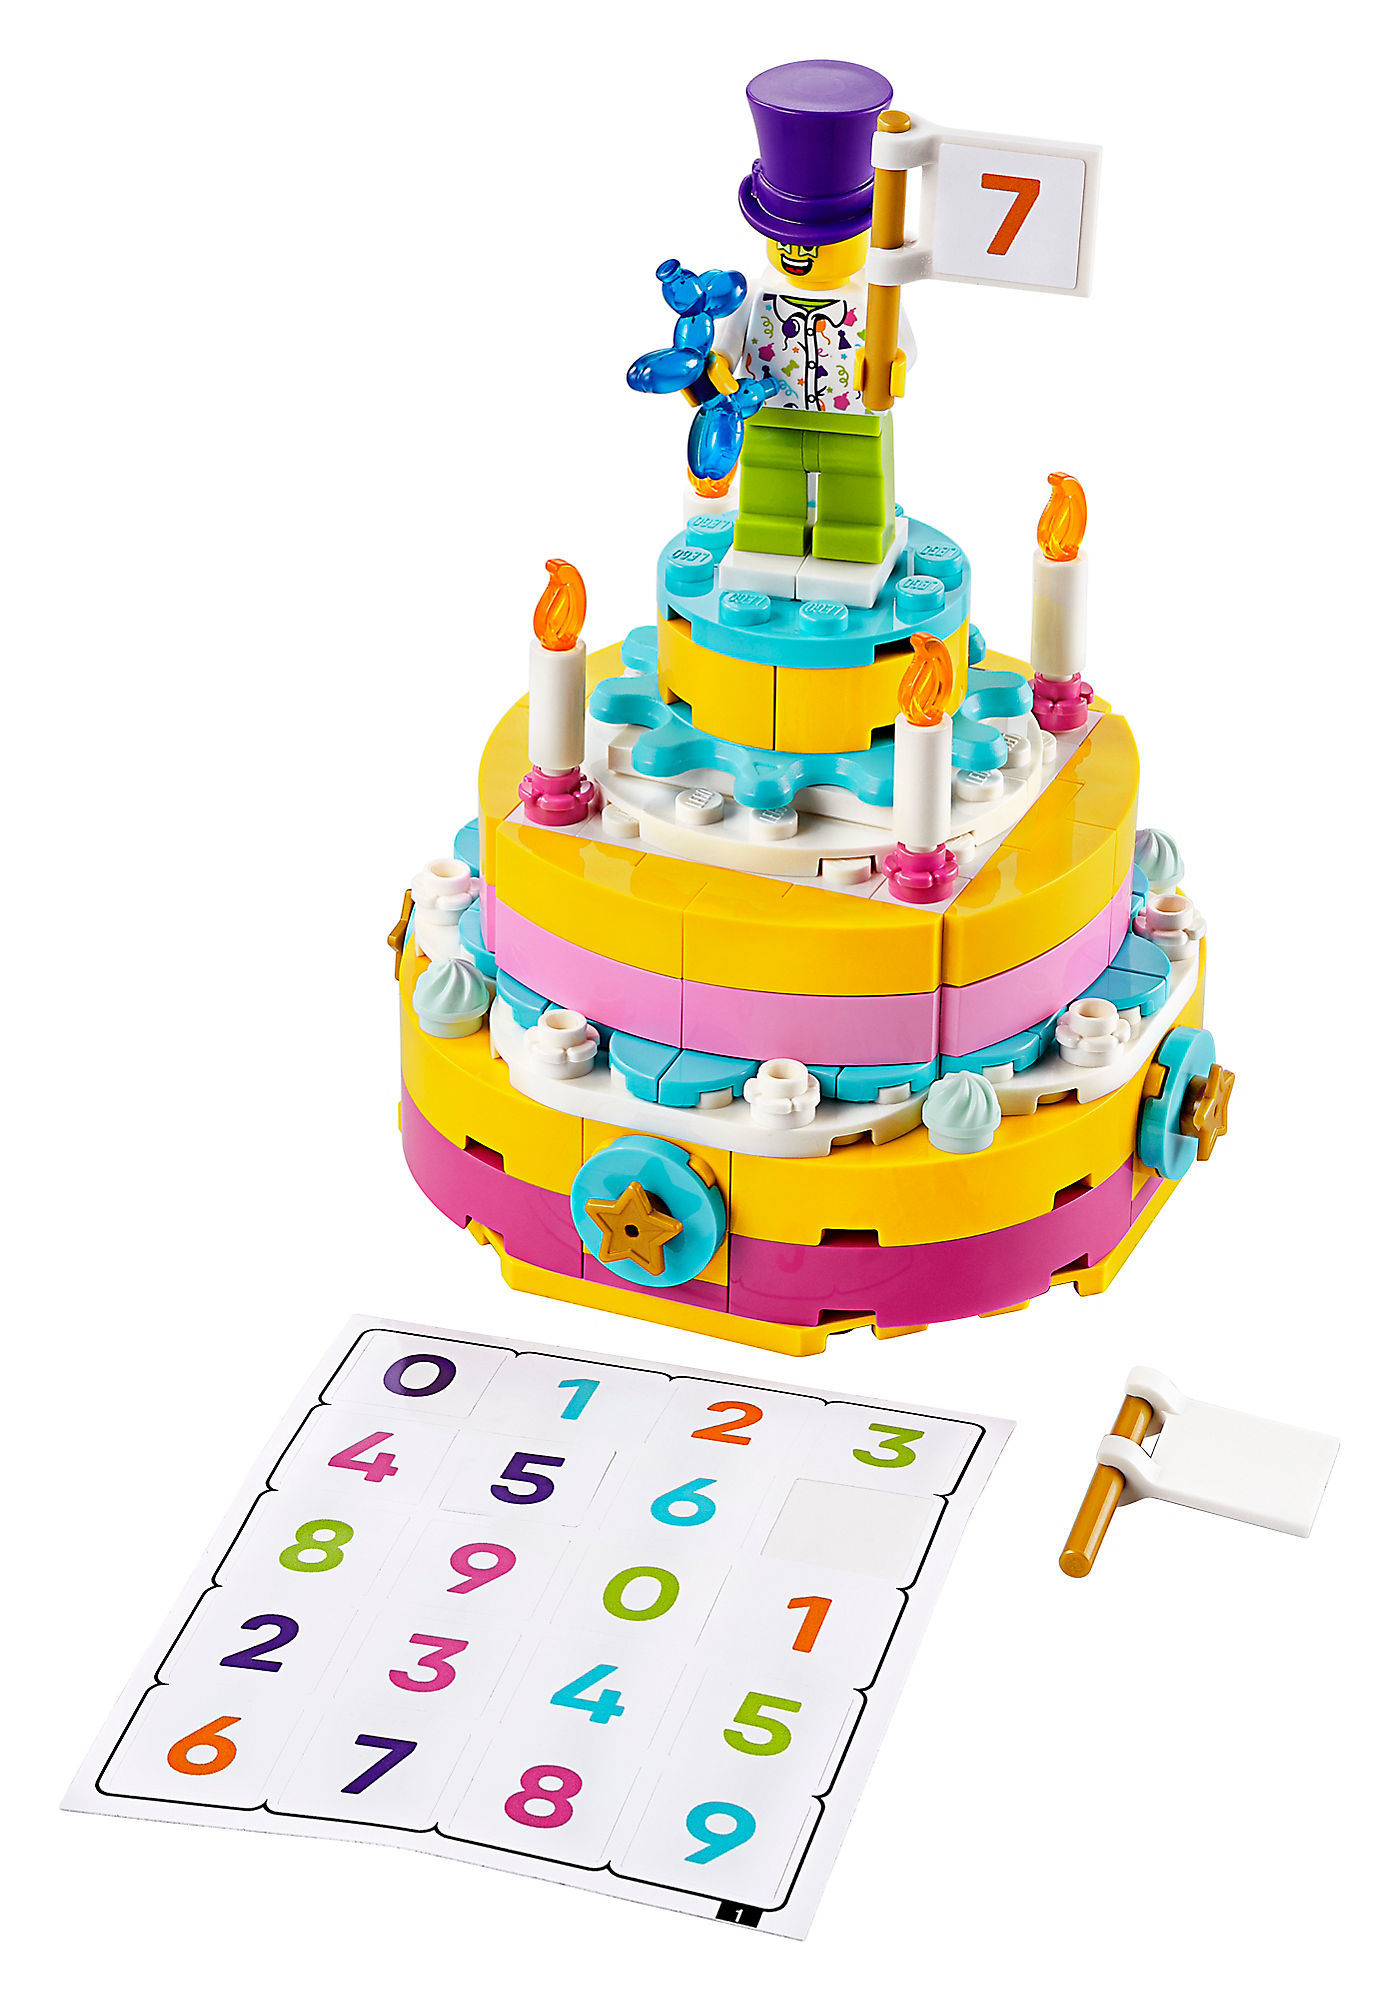 Awe Inspiring New Lego Birthday Set 40382 Coming Soon The Brick Fan Funny Birthday Cards Online Inifofree Goldxyz